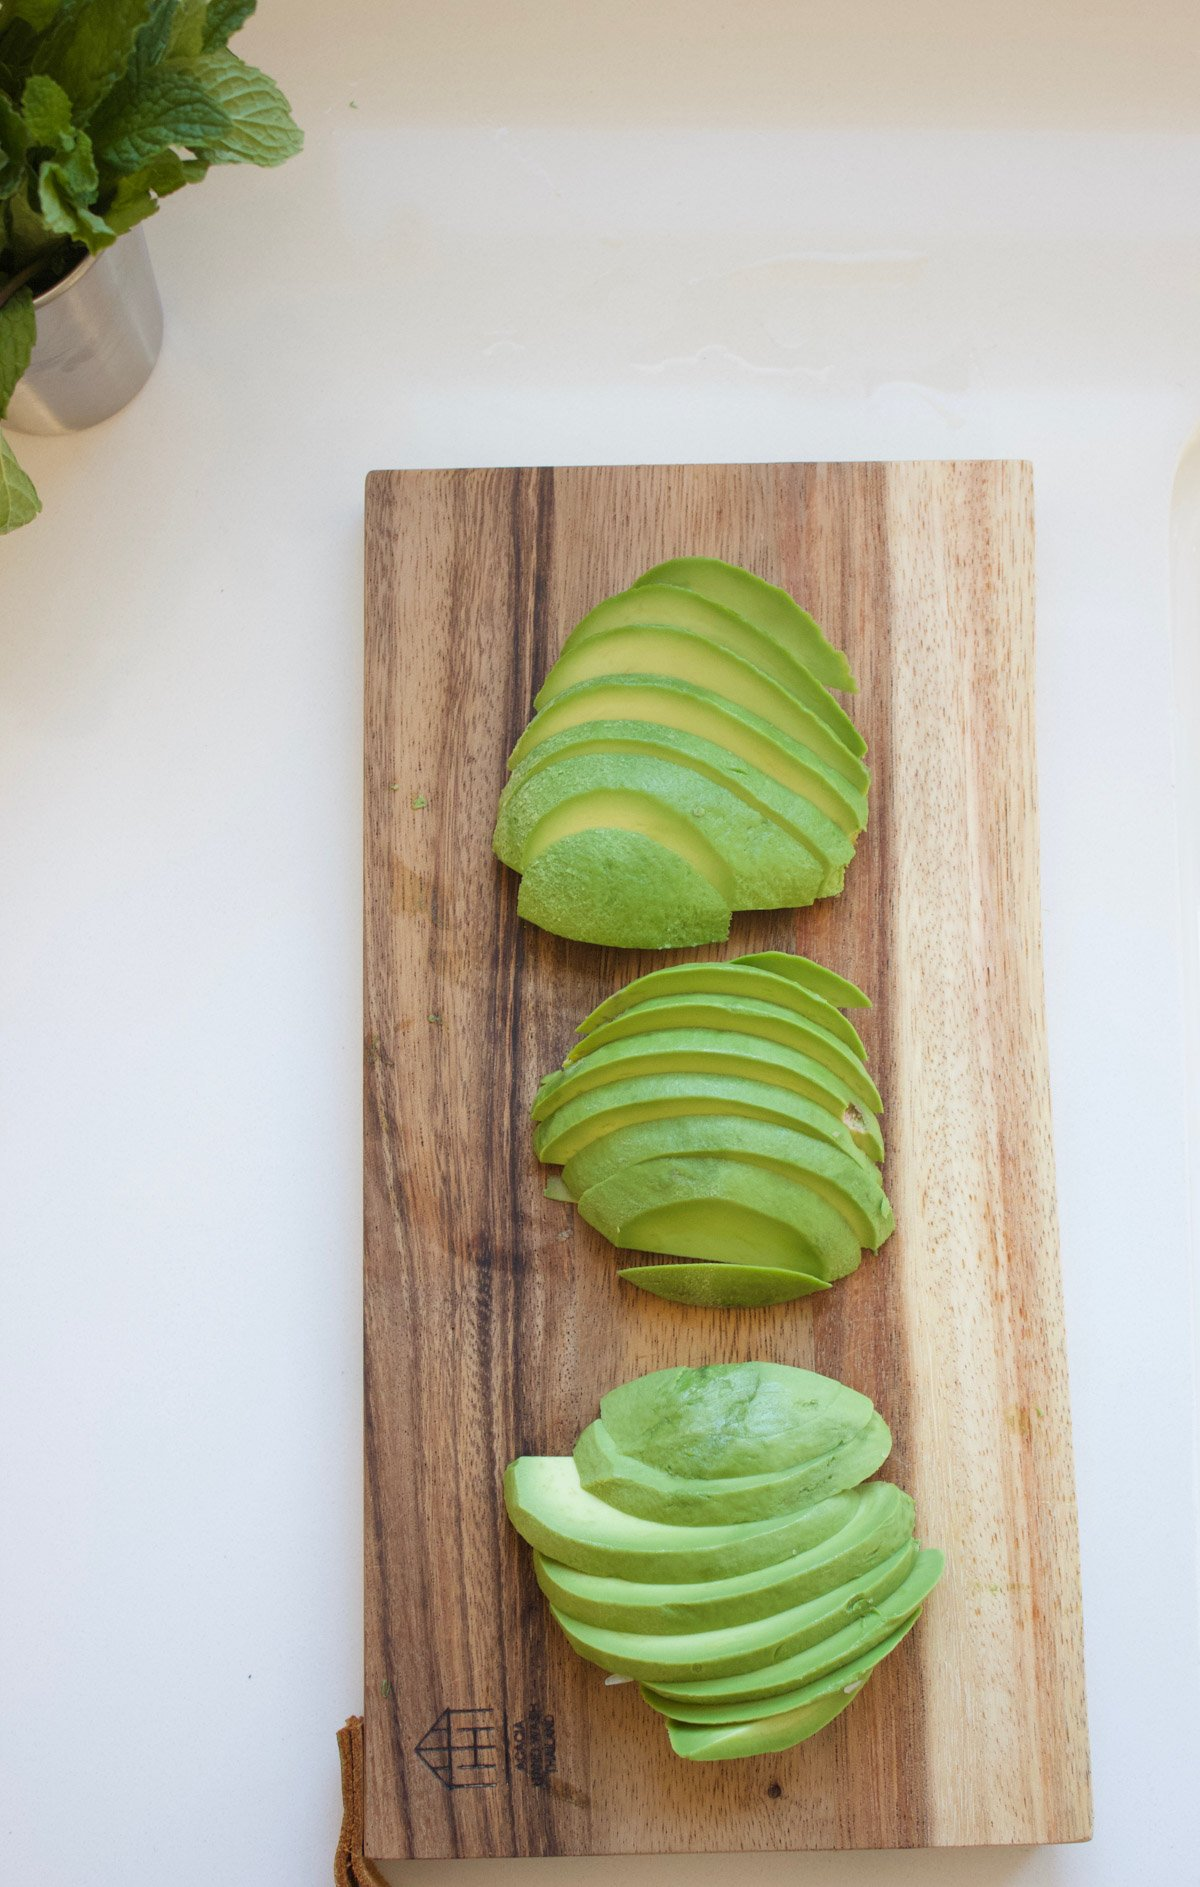 Sliced avocados on a cutting board